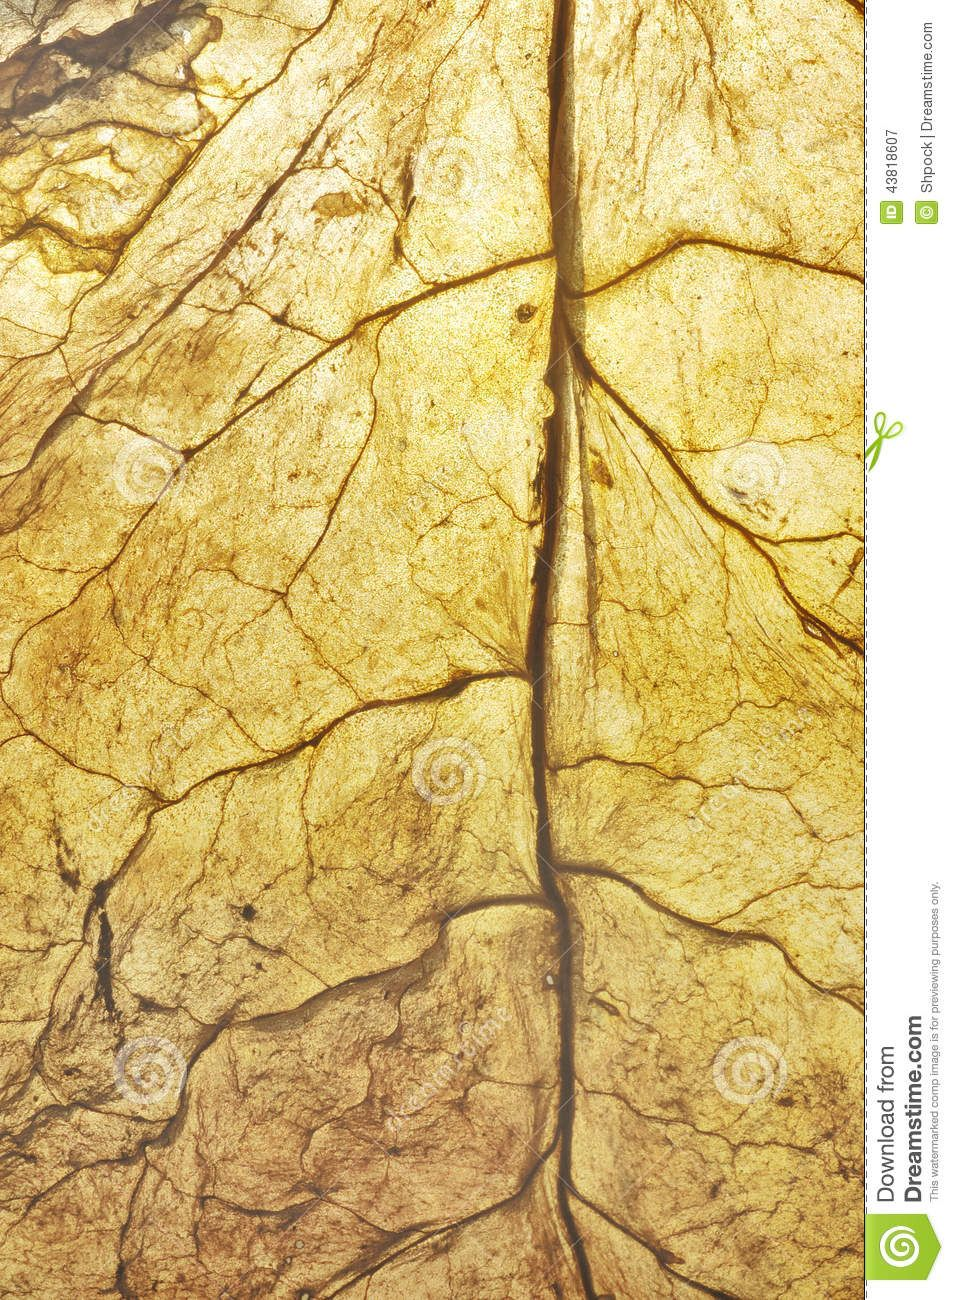 Dry leaf background HI Cleveland TN in 2019 Leaf background 954x1300